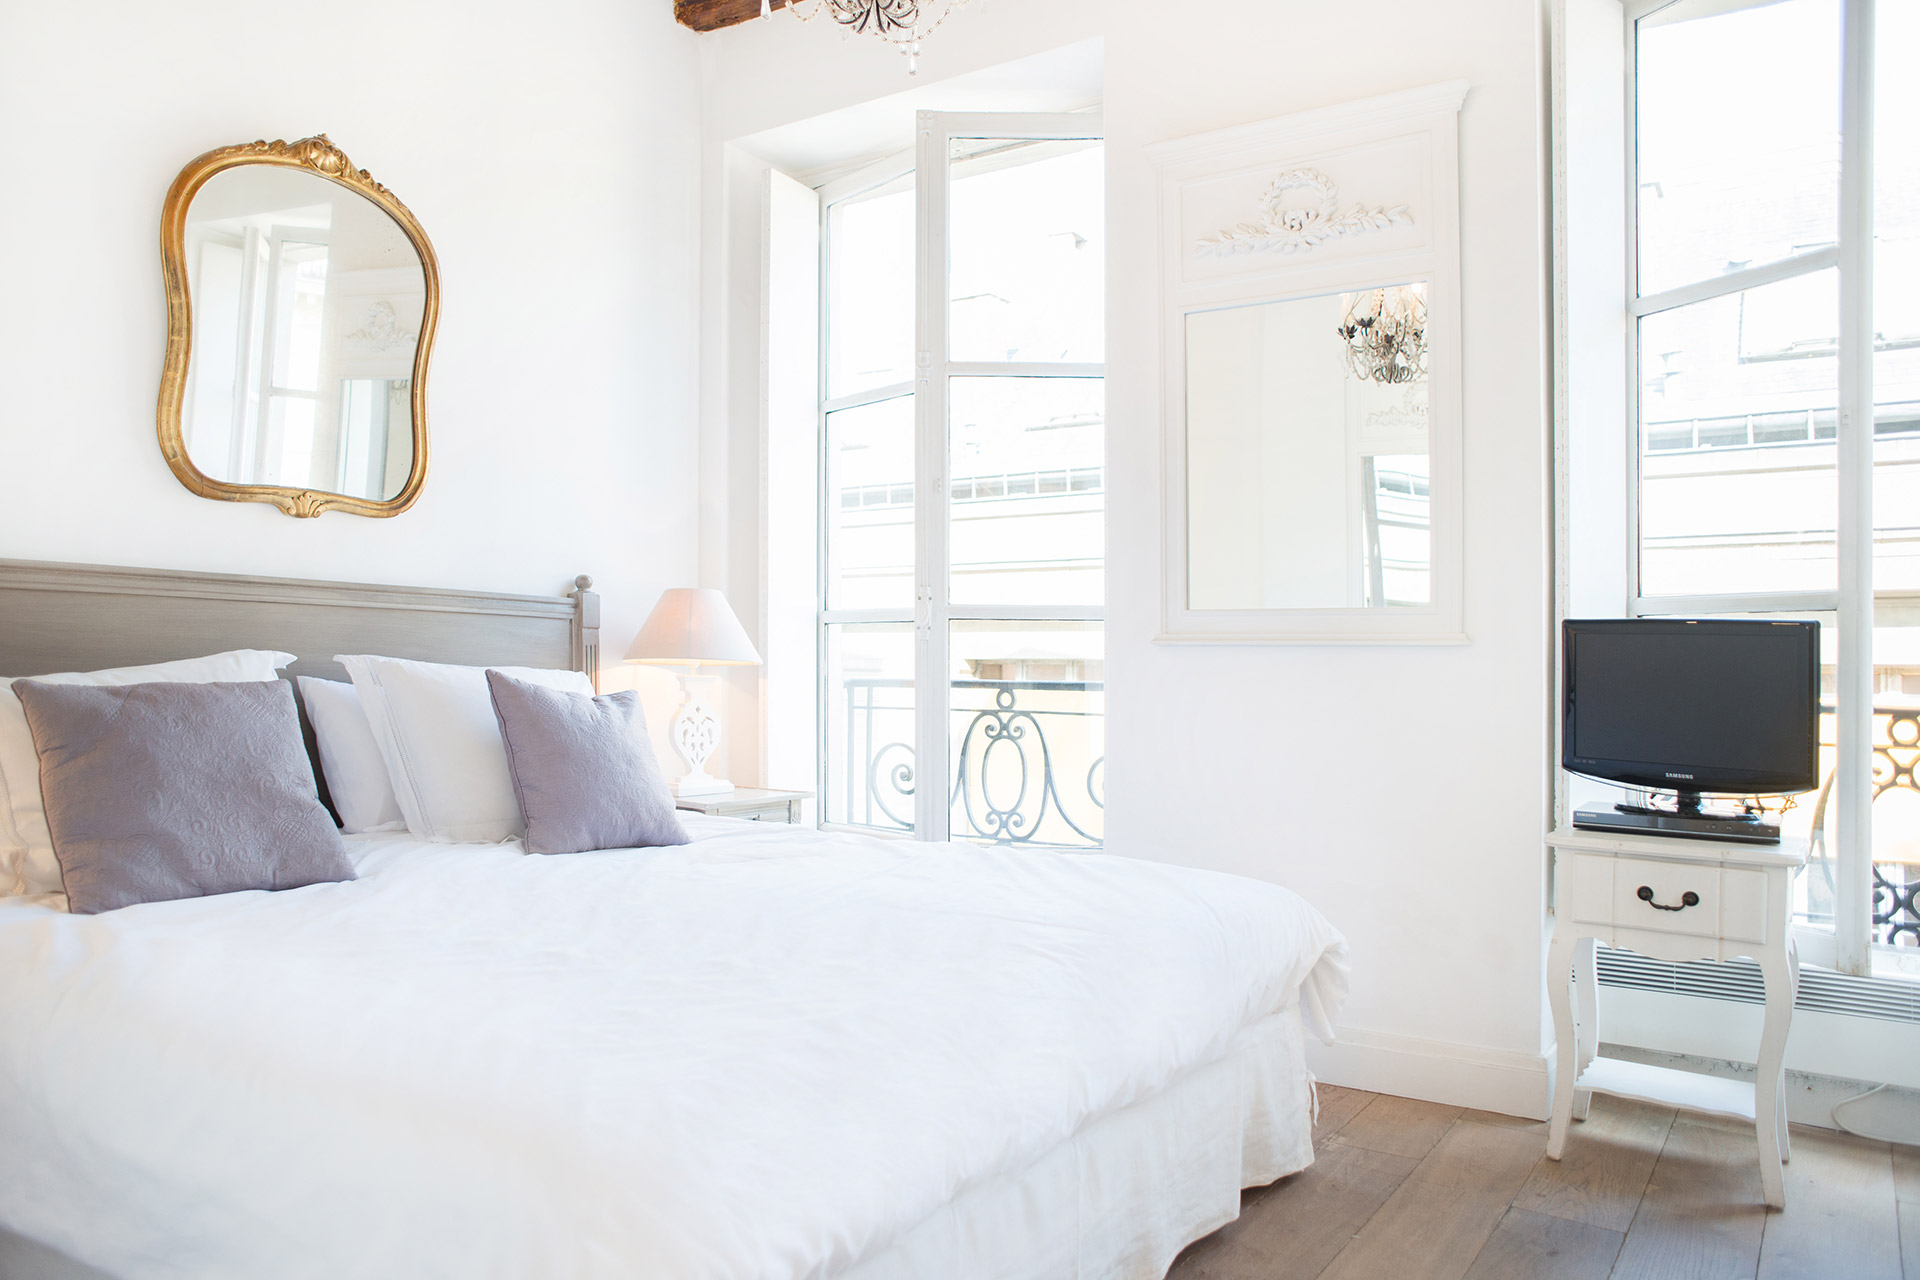 Queen size bed in the Forez vacation rental offered by Paris Perfect